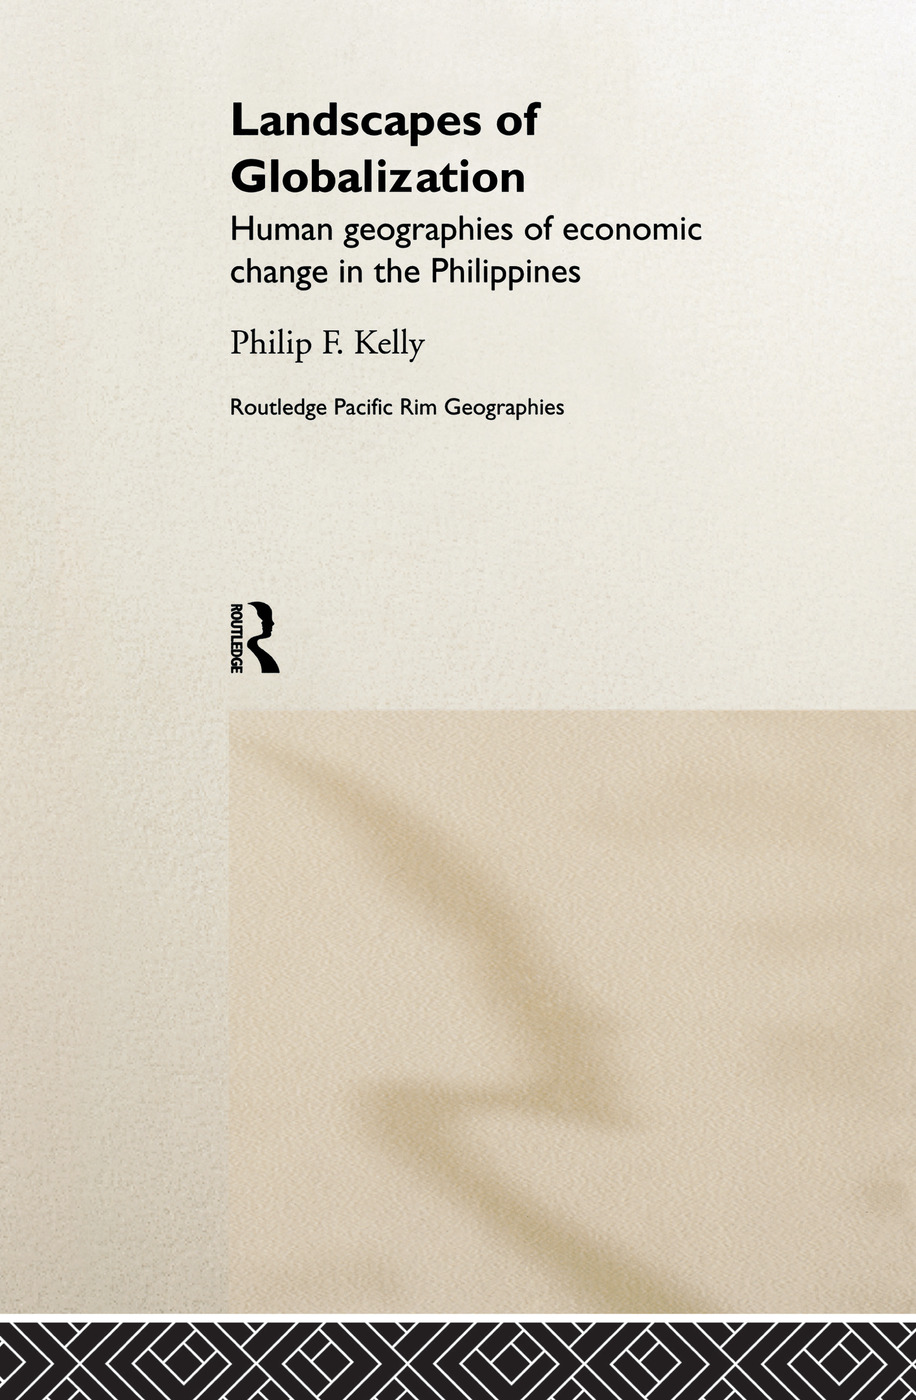 Landscapes of Globalization: Human Geographies of Economic Change in the Philippines book cover